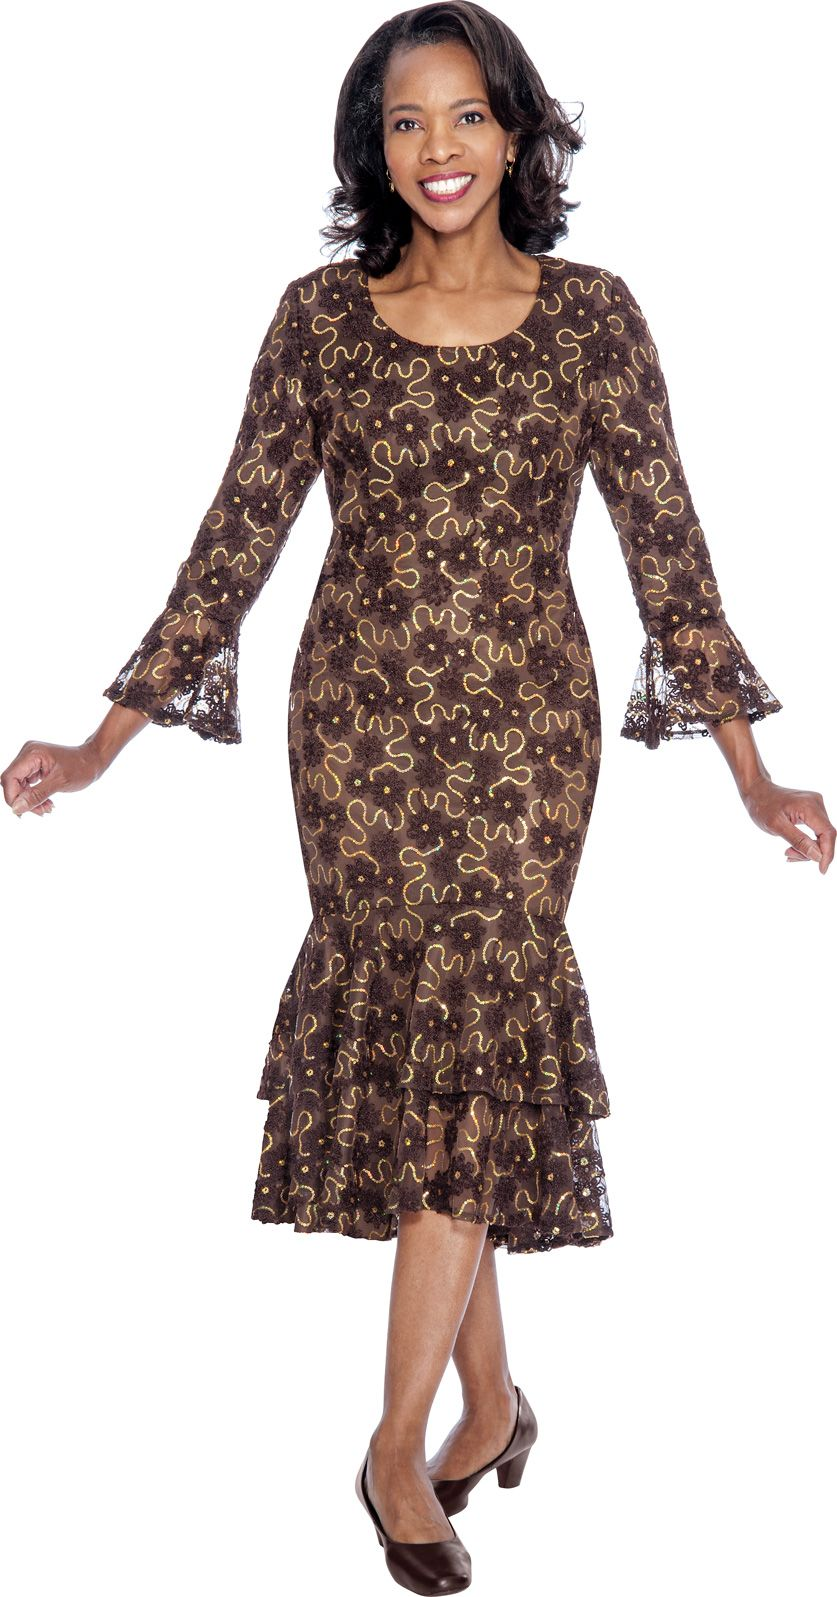 Nubiano DN4621 Sequin Lace Church Dress French Novelty